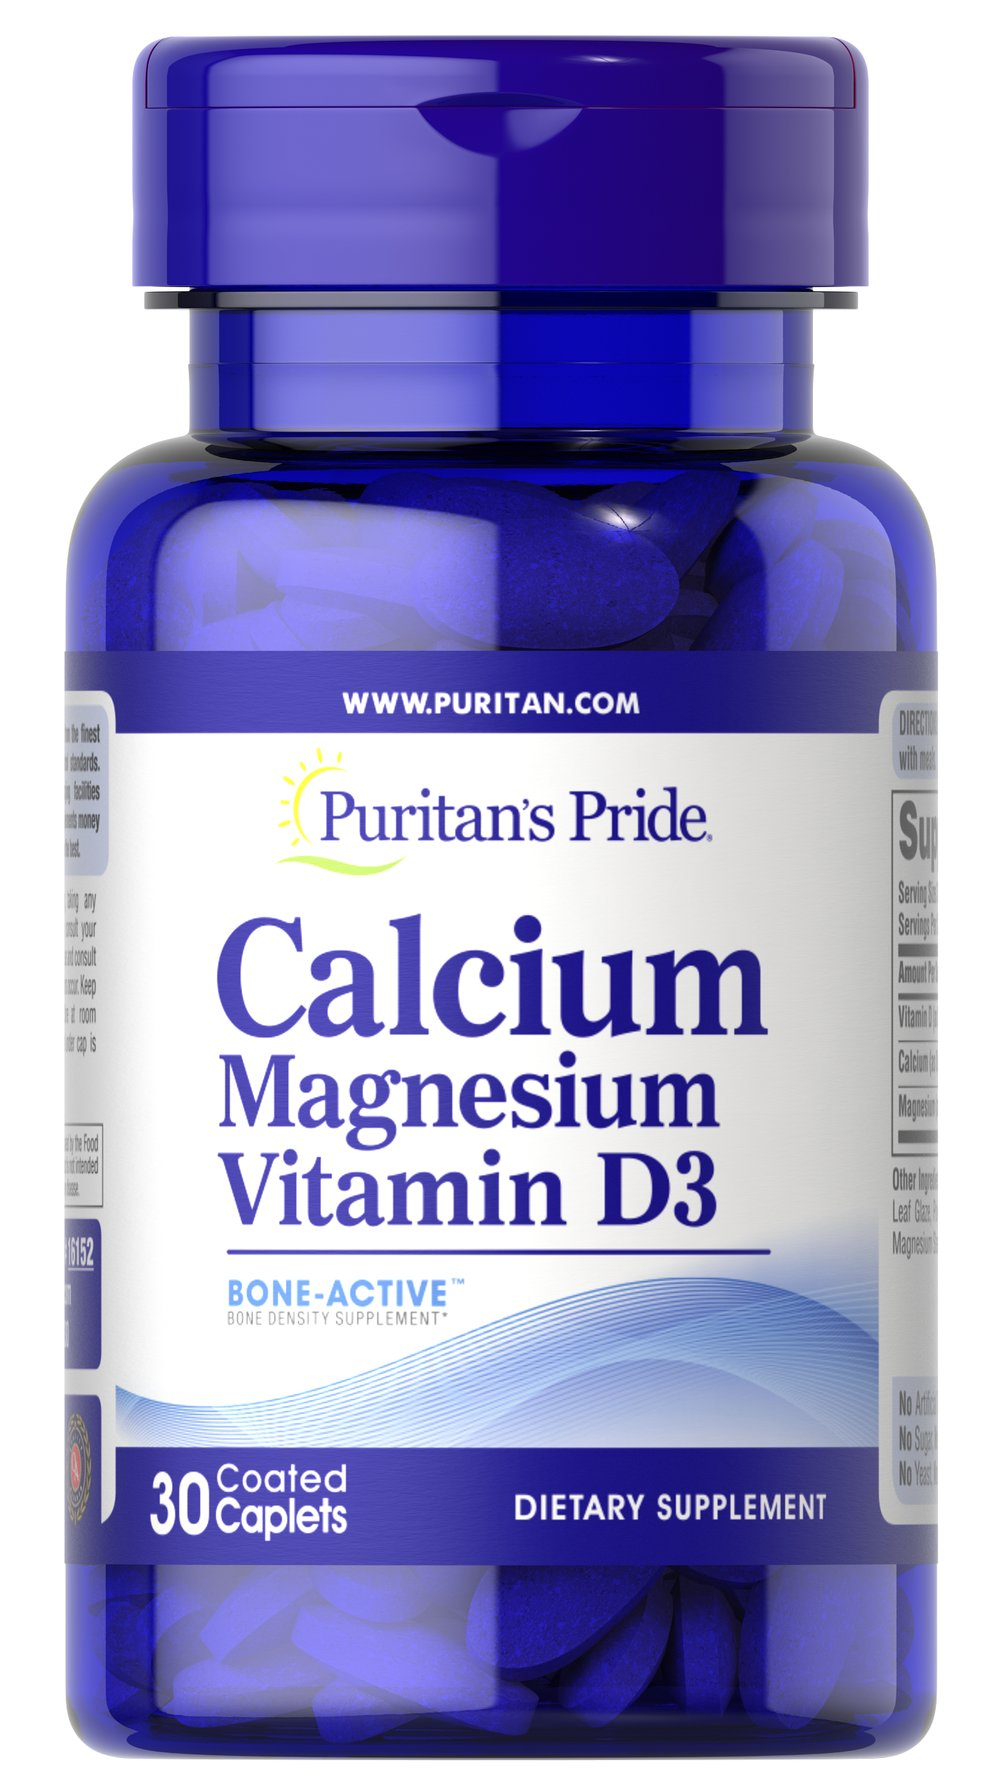 Calcium Magnesium with Vitamin D <p><br />This 3-in-1 supplement contains Bone-Active™ which is formulated to help maintain bone density and strength, supporting optimal bone health.** No matter what your age, you need to care for your bones. Supporting bone health with high-quality Calcium, Magnesium and Vitamin D is simple with this all-in-one supplement. Each of these nutrients plays an essential role in maintaining bone health.** Calcium and Magnesium are important for muscle con